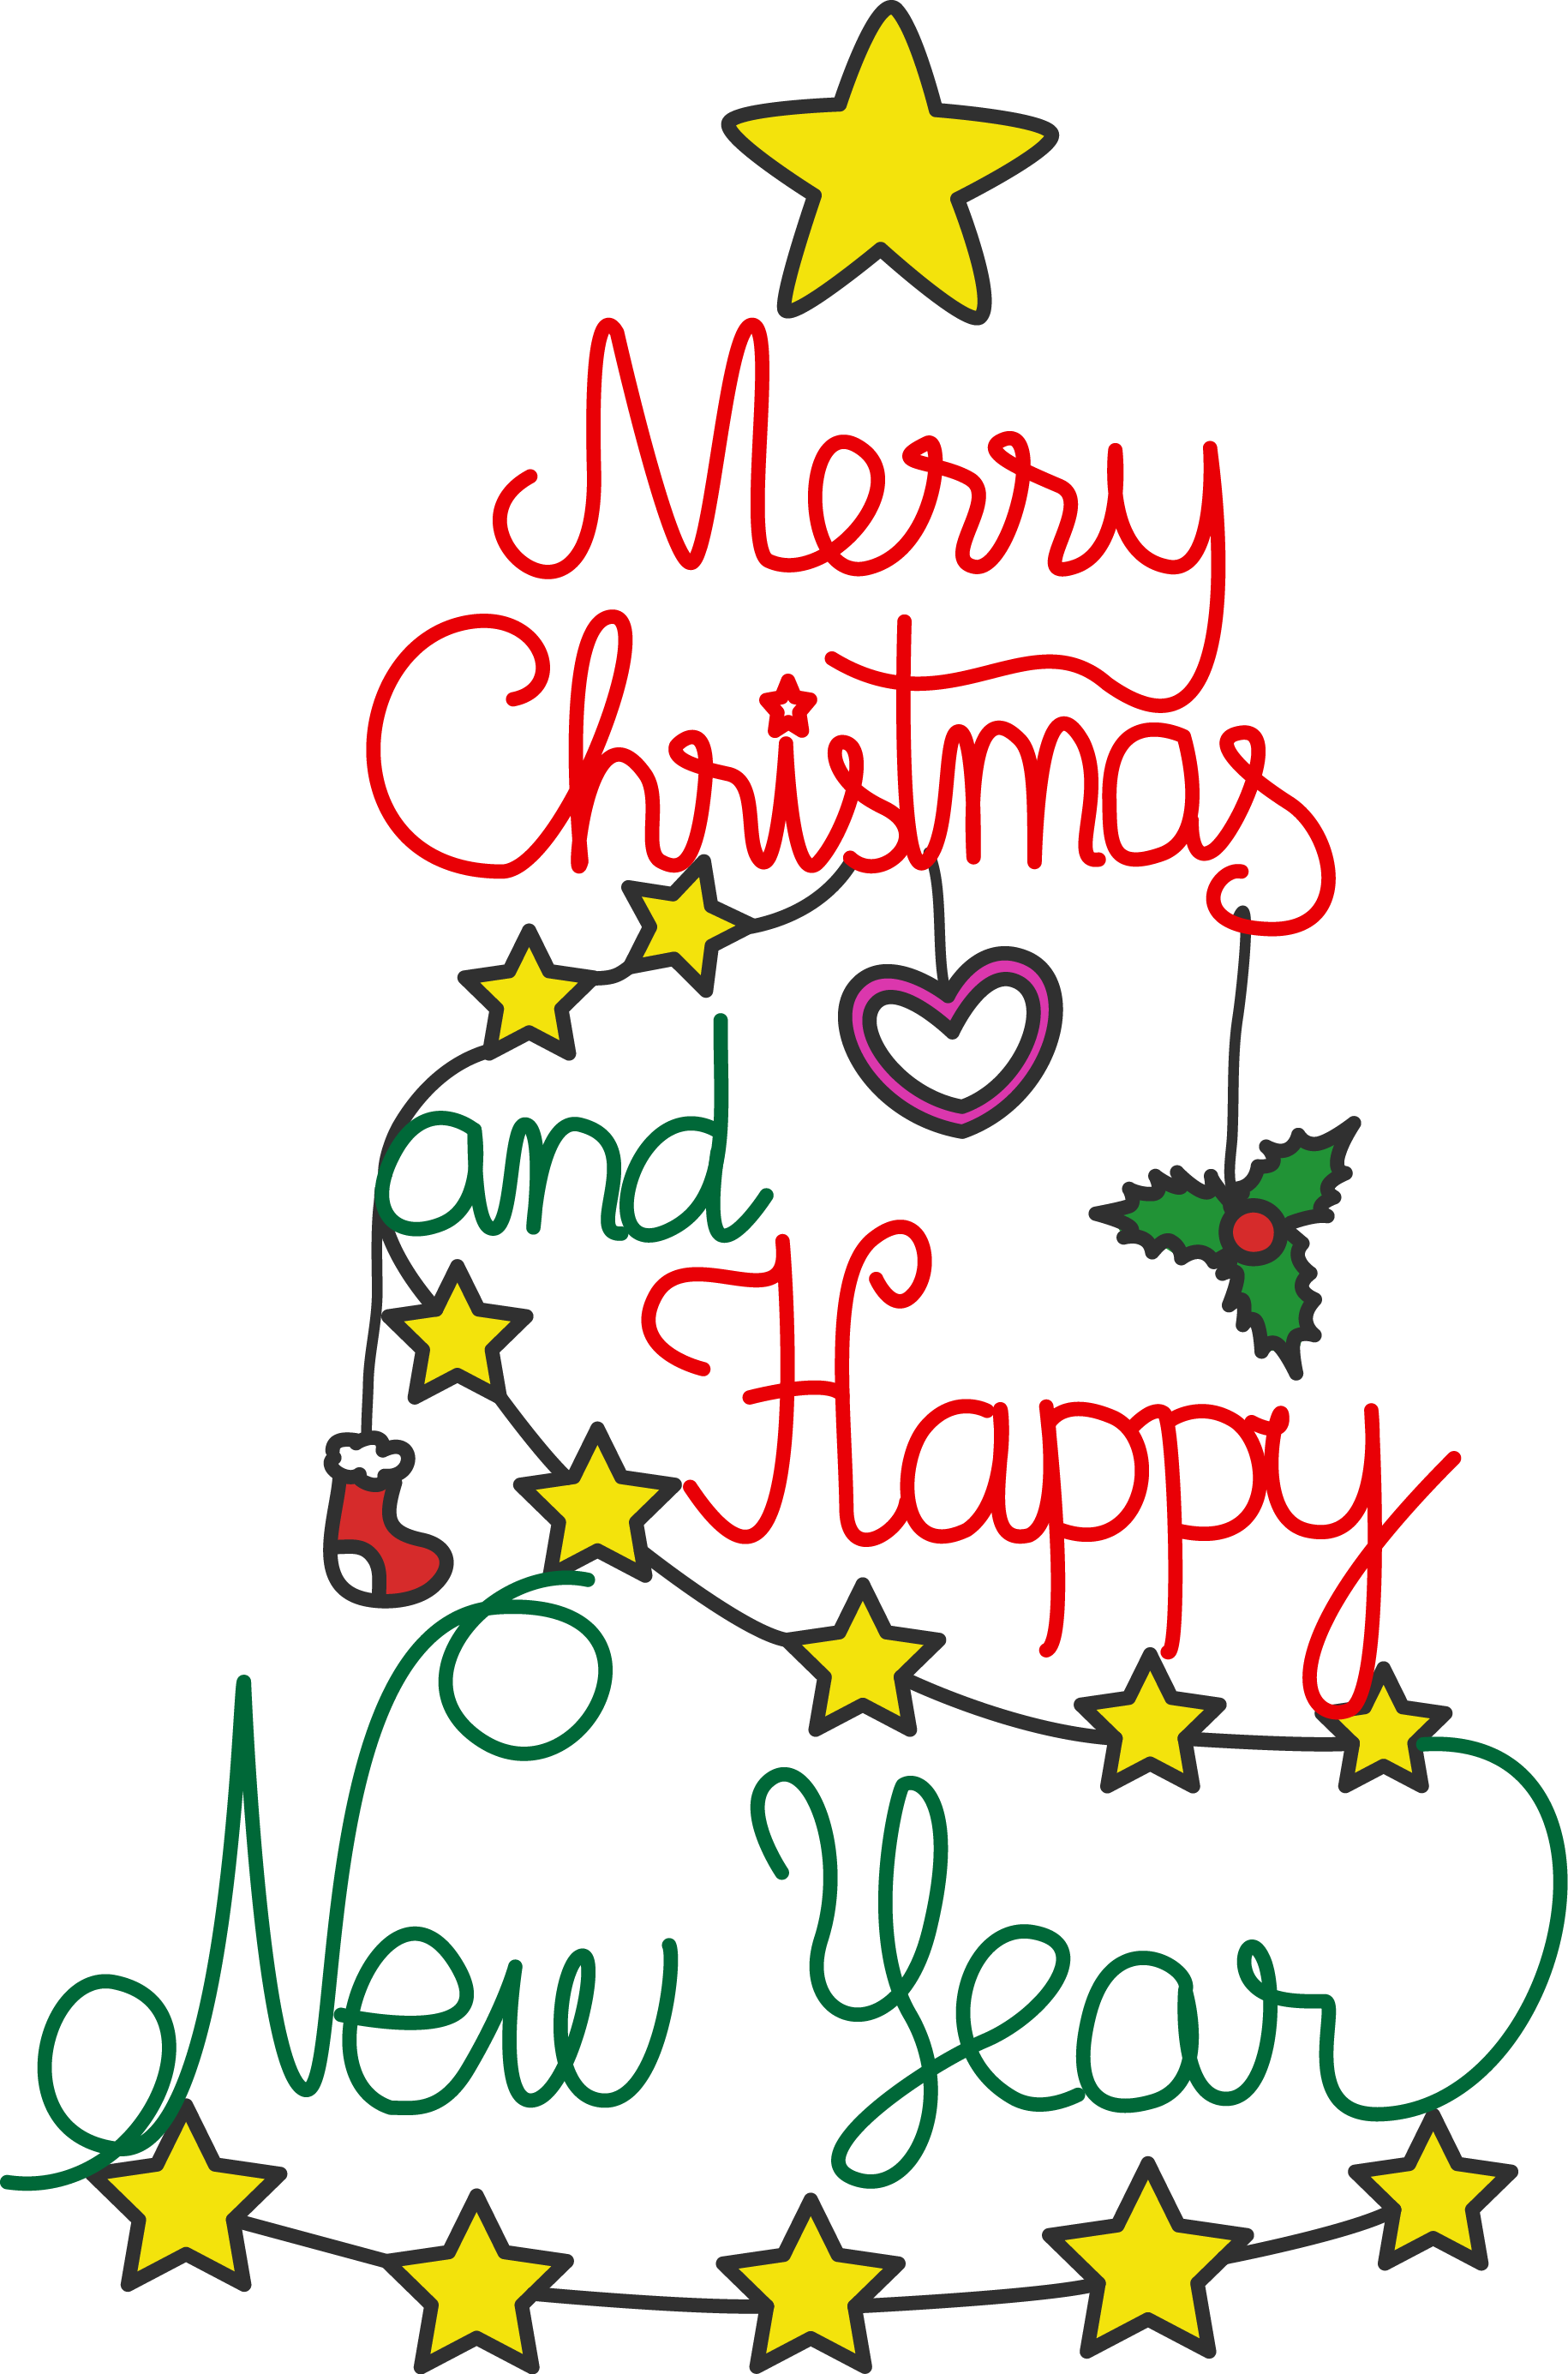 Merry christmas and happy new year clipart free graphic black and white Merry Christmas And Happy New Year Clip Art – Merry Christmas And ... graphic black and white